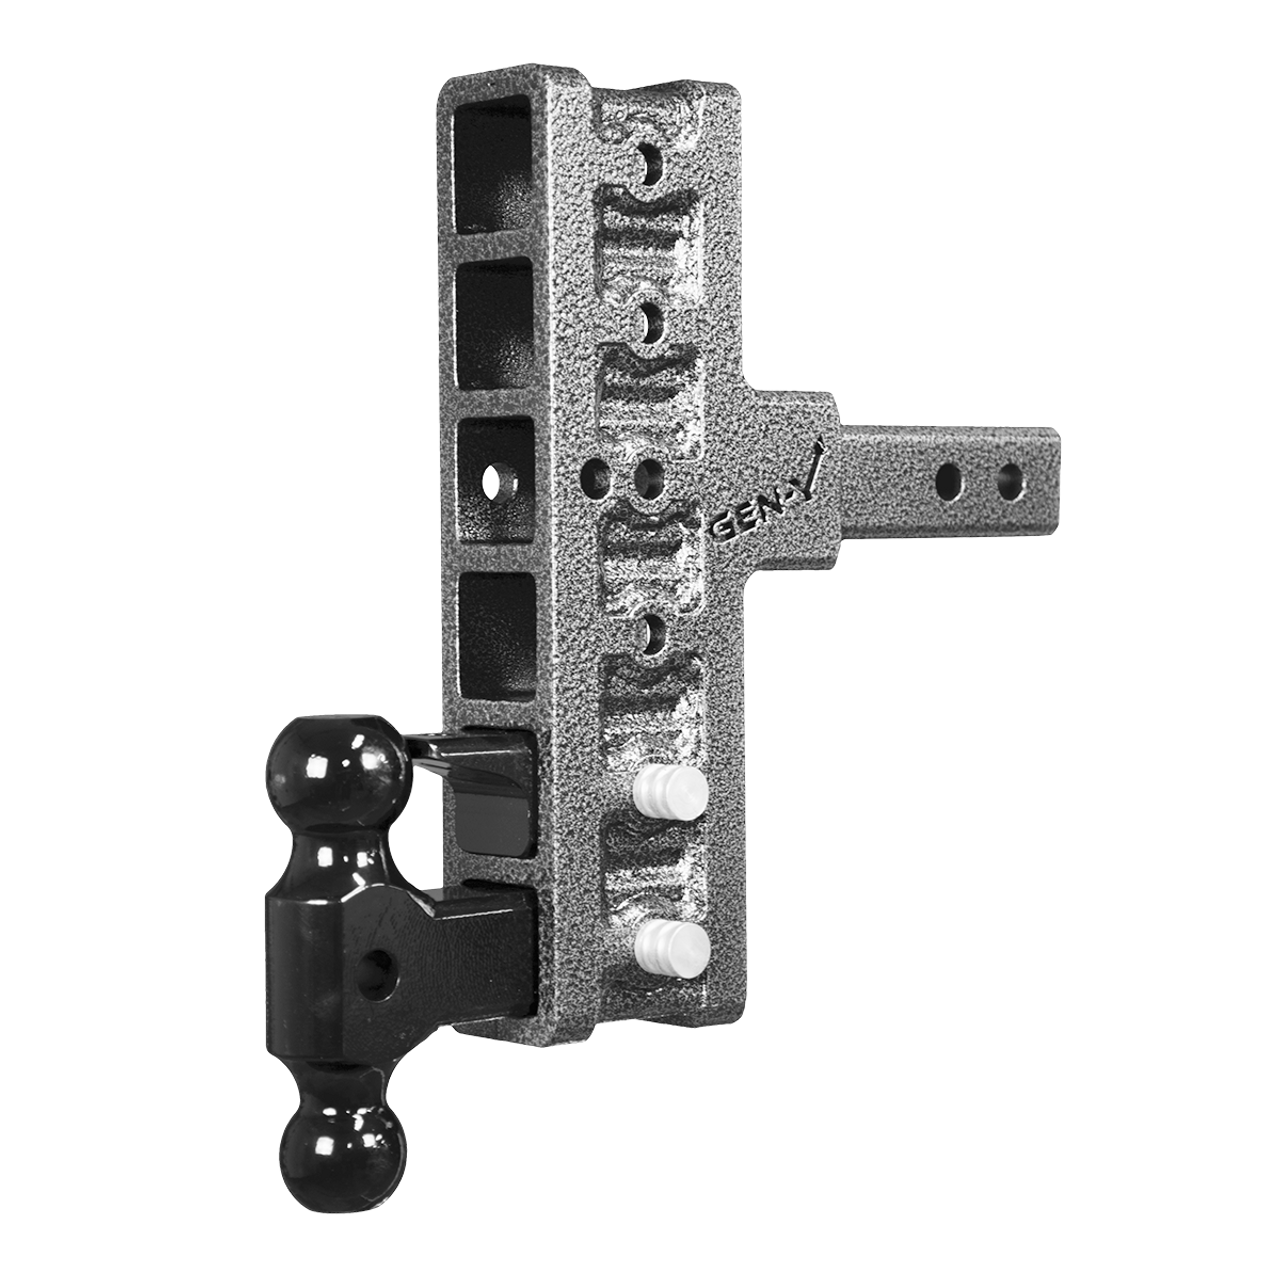 GH-426 --- Six Position Mega-Duty Offset Shank with Dual Ball and Pintle - 10,000 lb Capacity